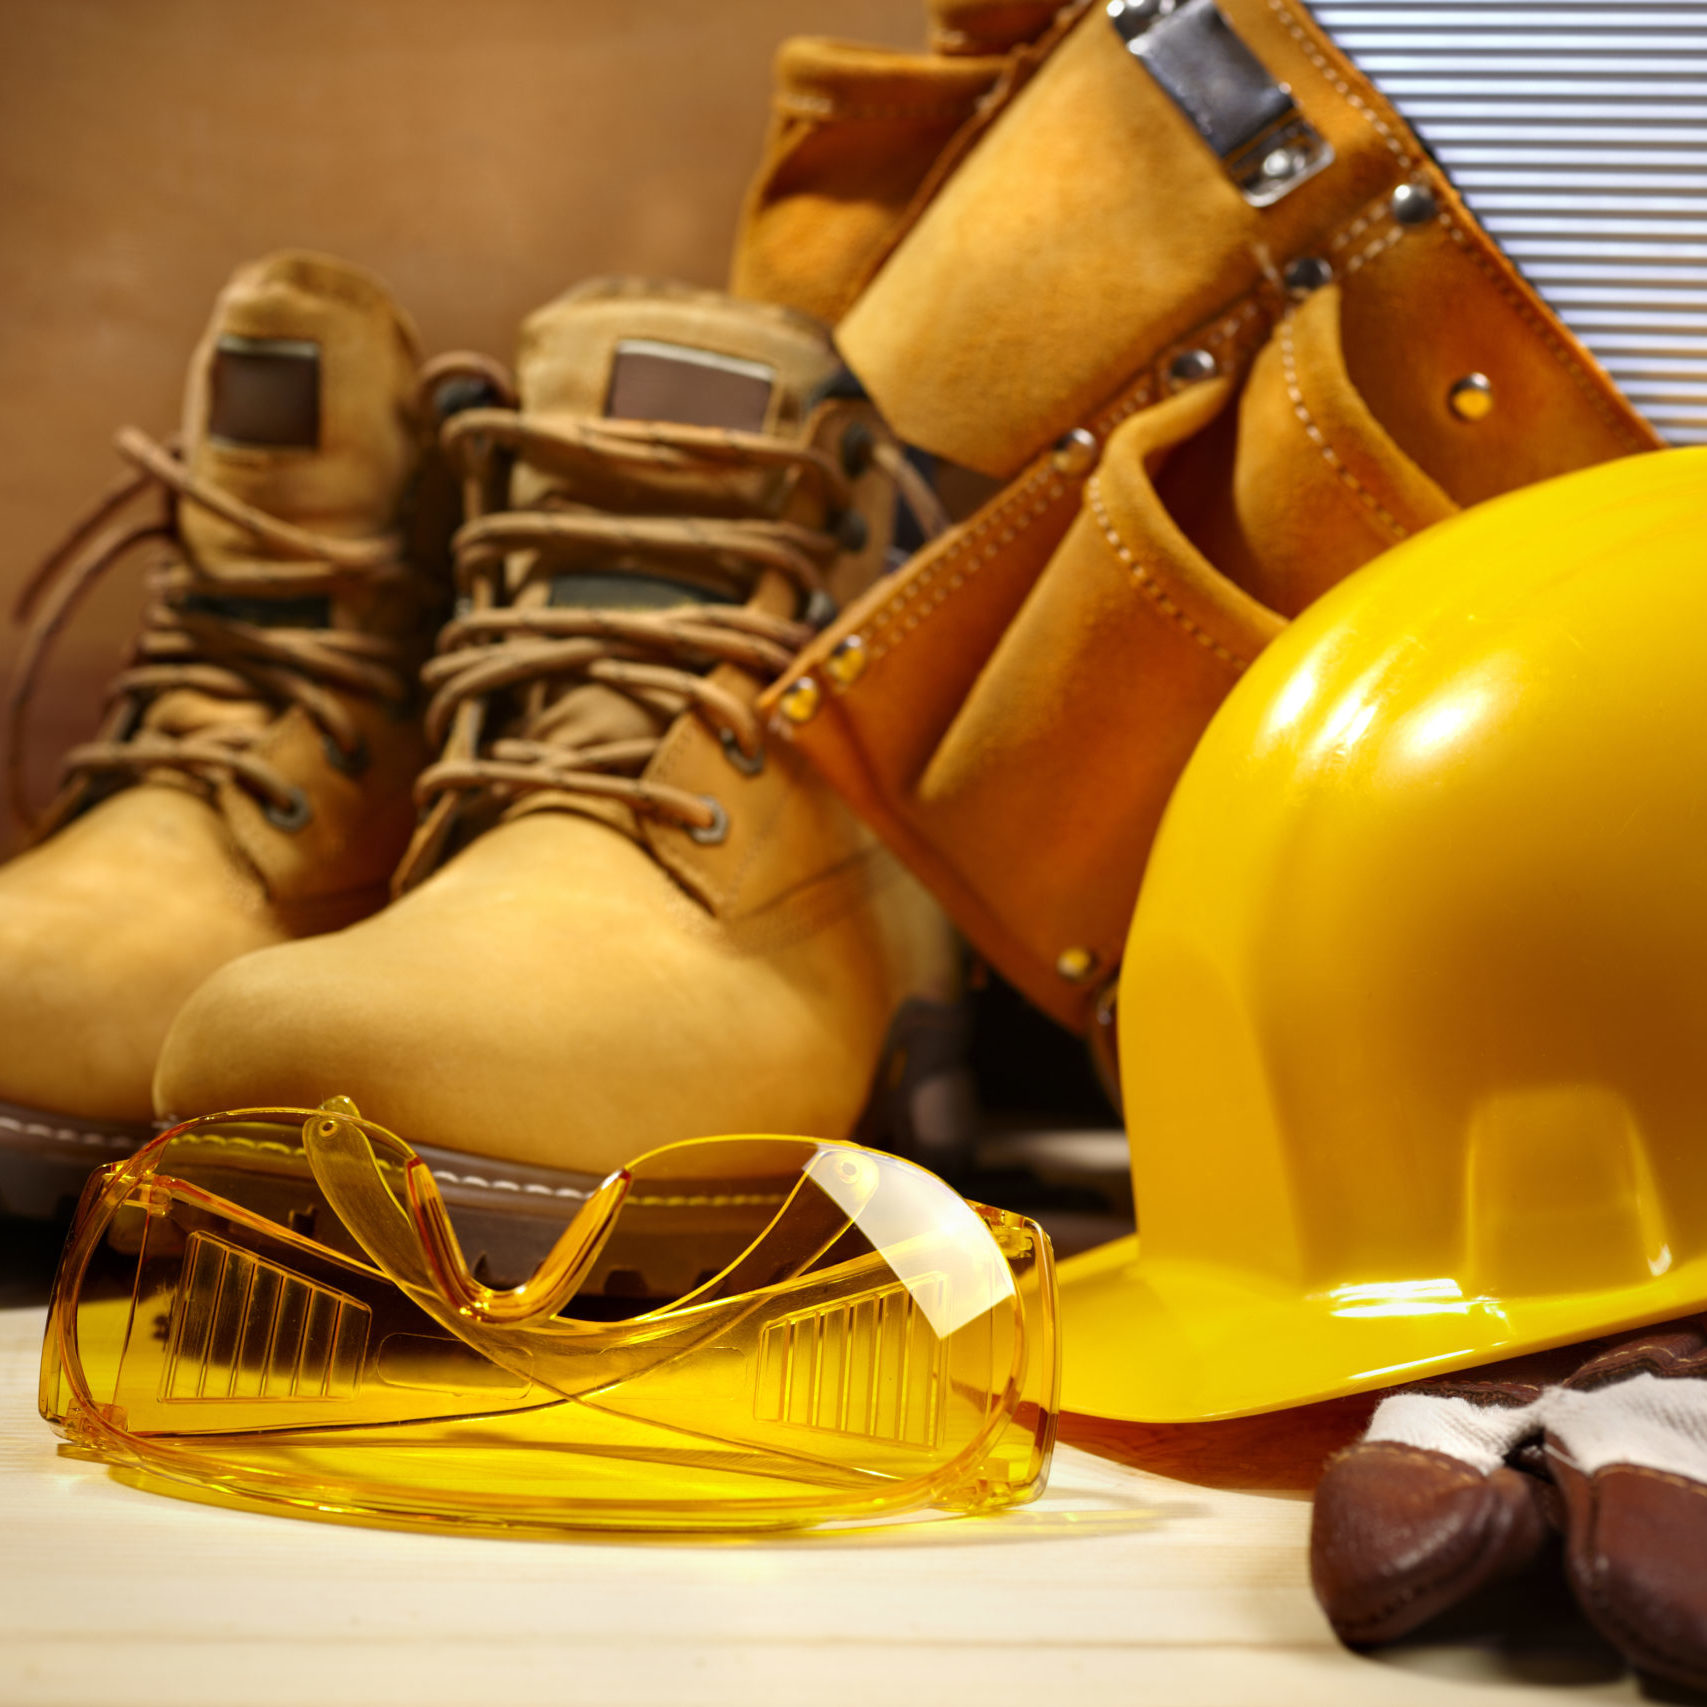 hardhat and shoes